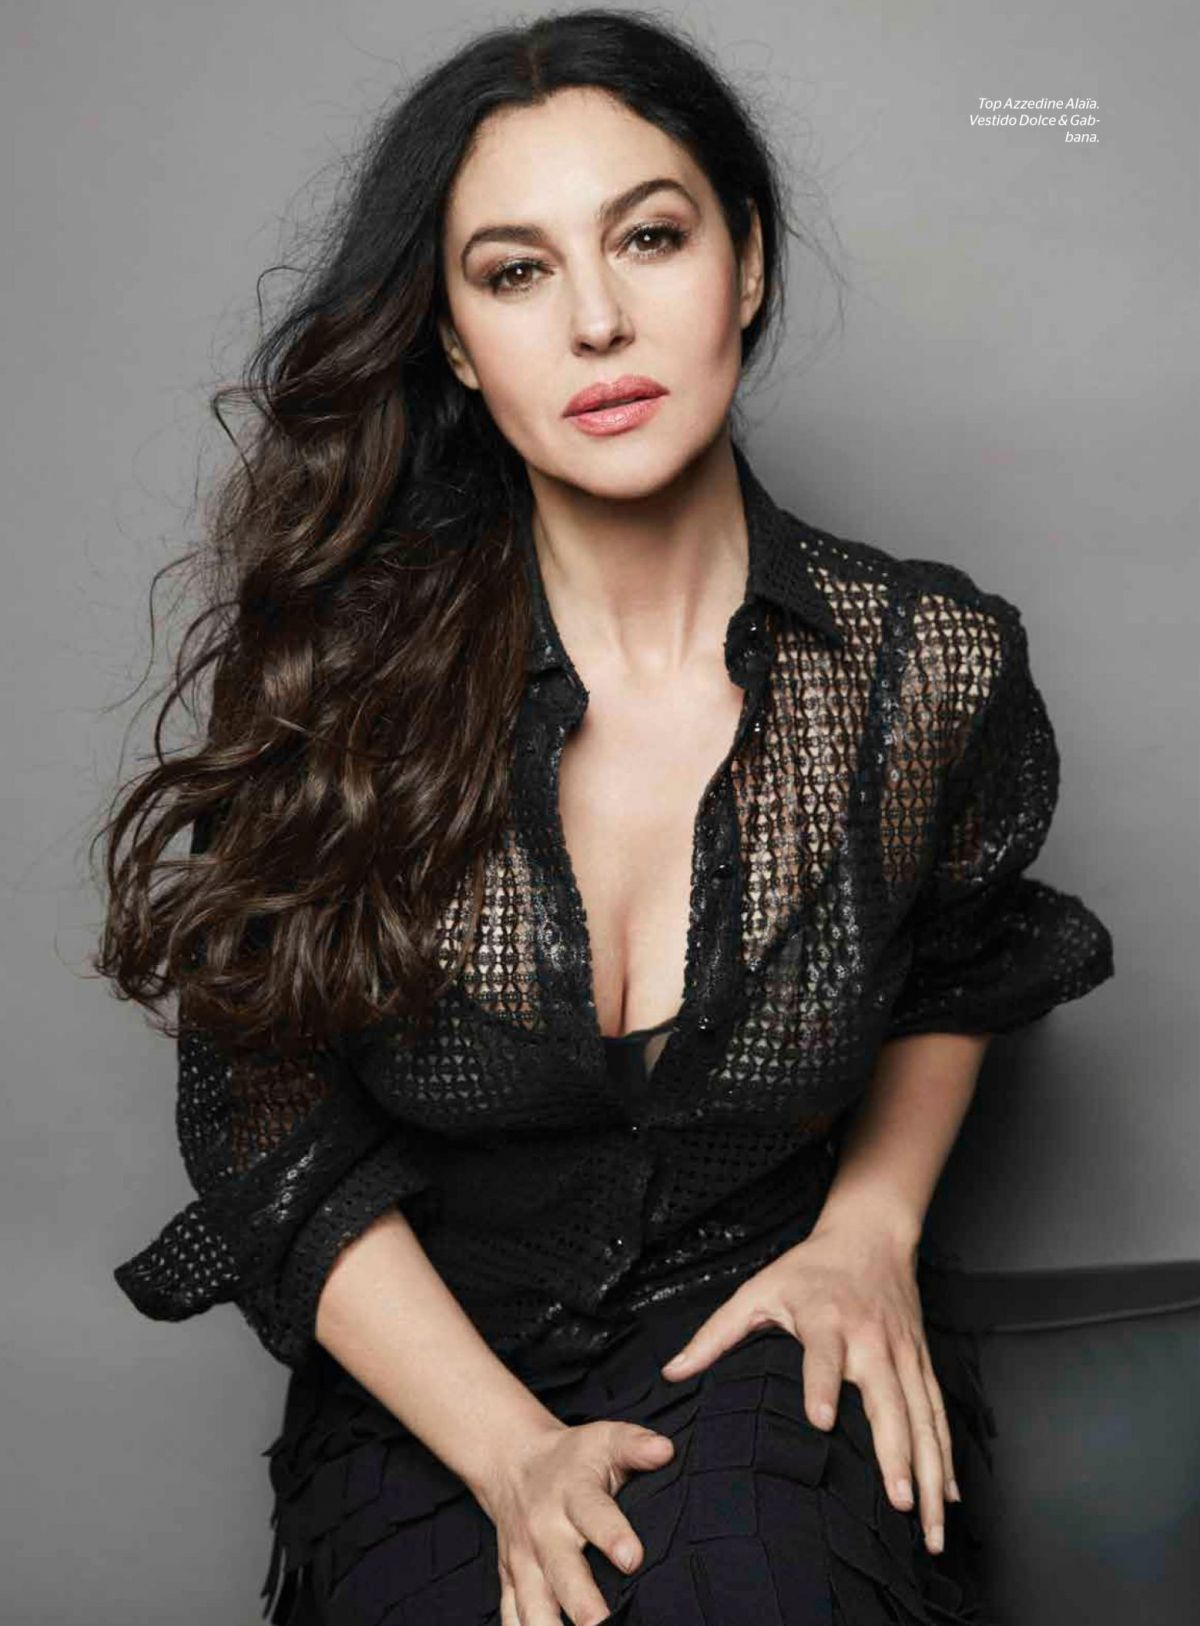 Monica Bellucci In Esquire Mexico October 2015 - Celebzz - Celebzz Monica Bellucci